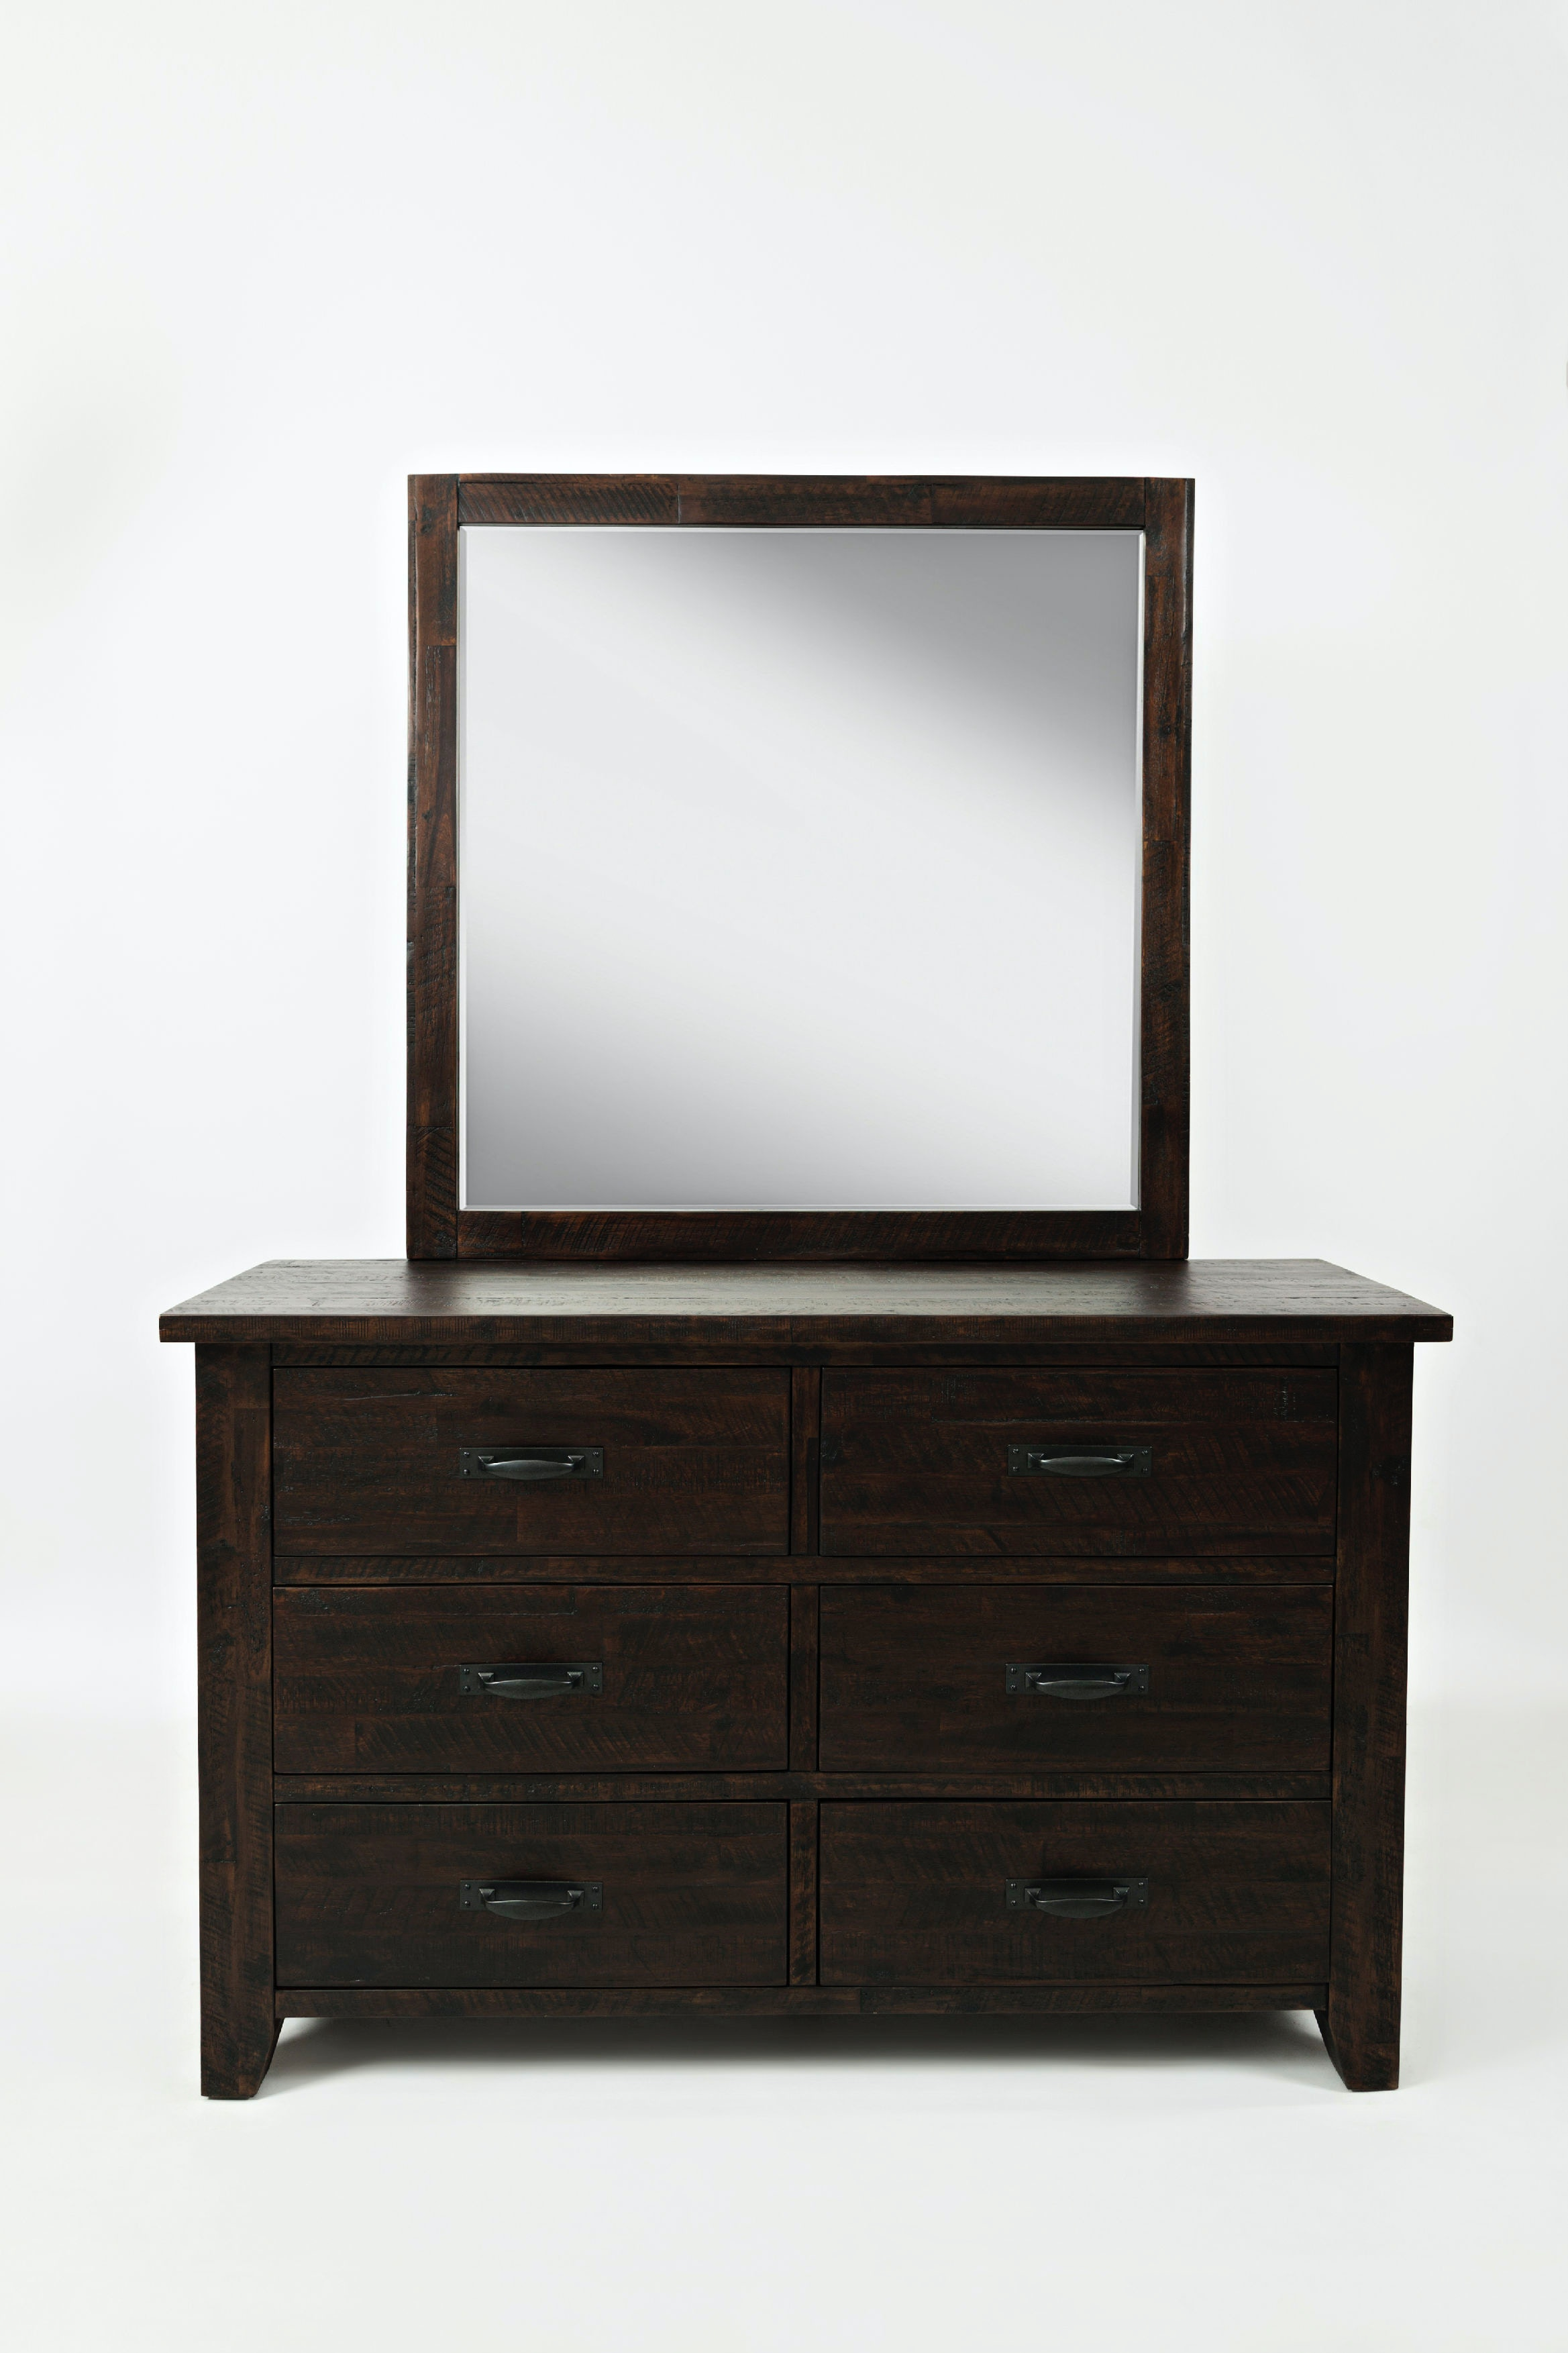 #271D18 Jofran Bedroom Double Dresser  Assembled 1605 10 At Klopfenstein Home  with 2337x3506 px of Brand New Assembled Bedroom Dressers 35062337 pic @ avoidforclosure.info